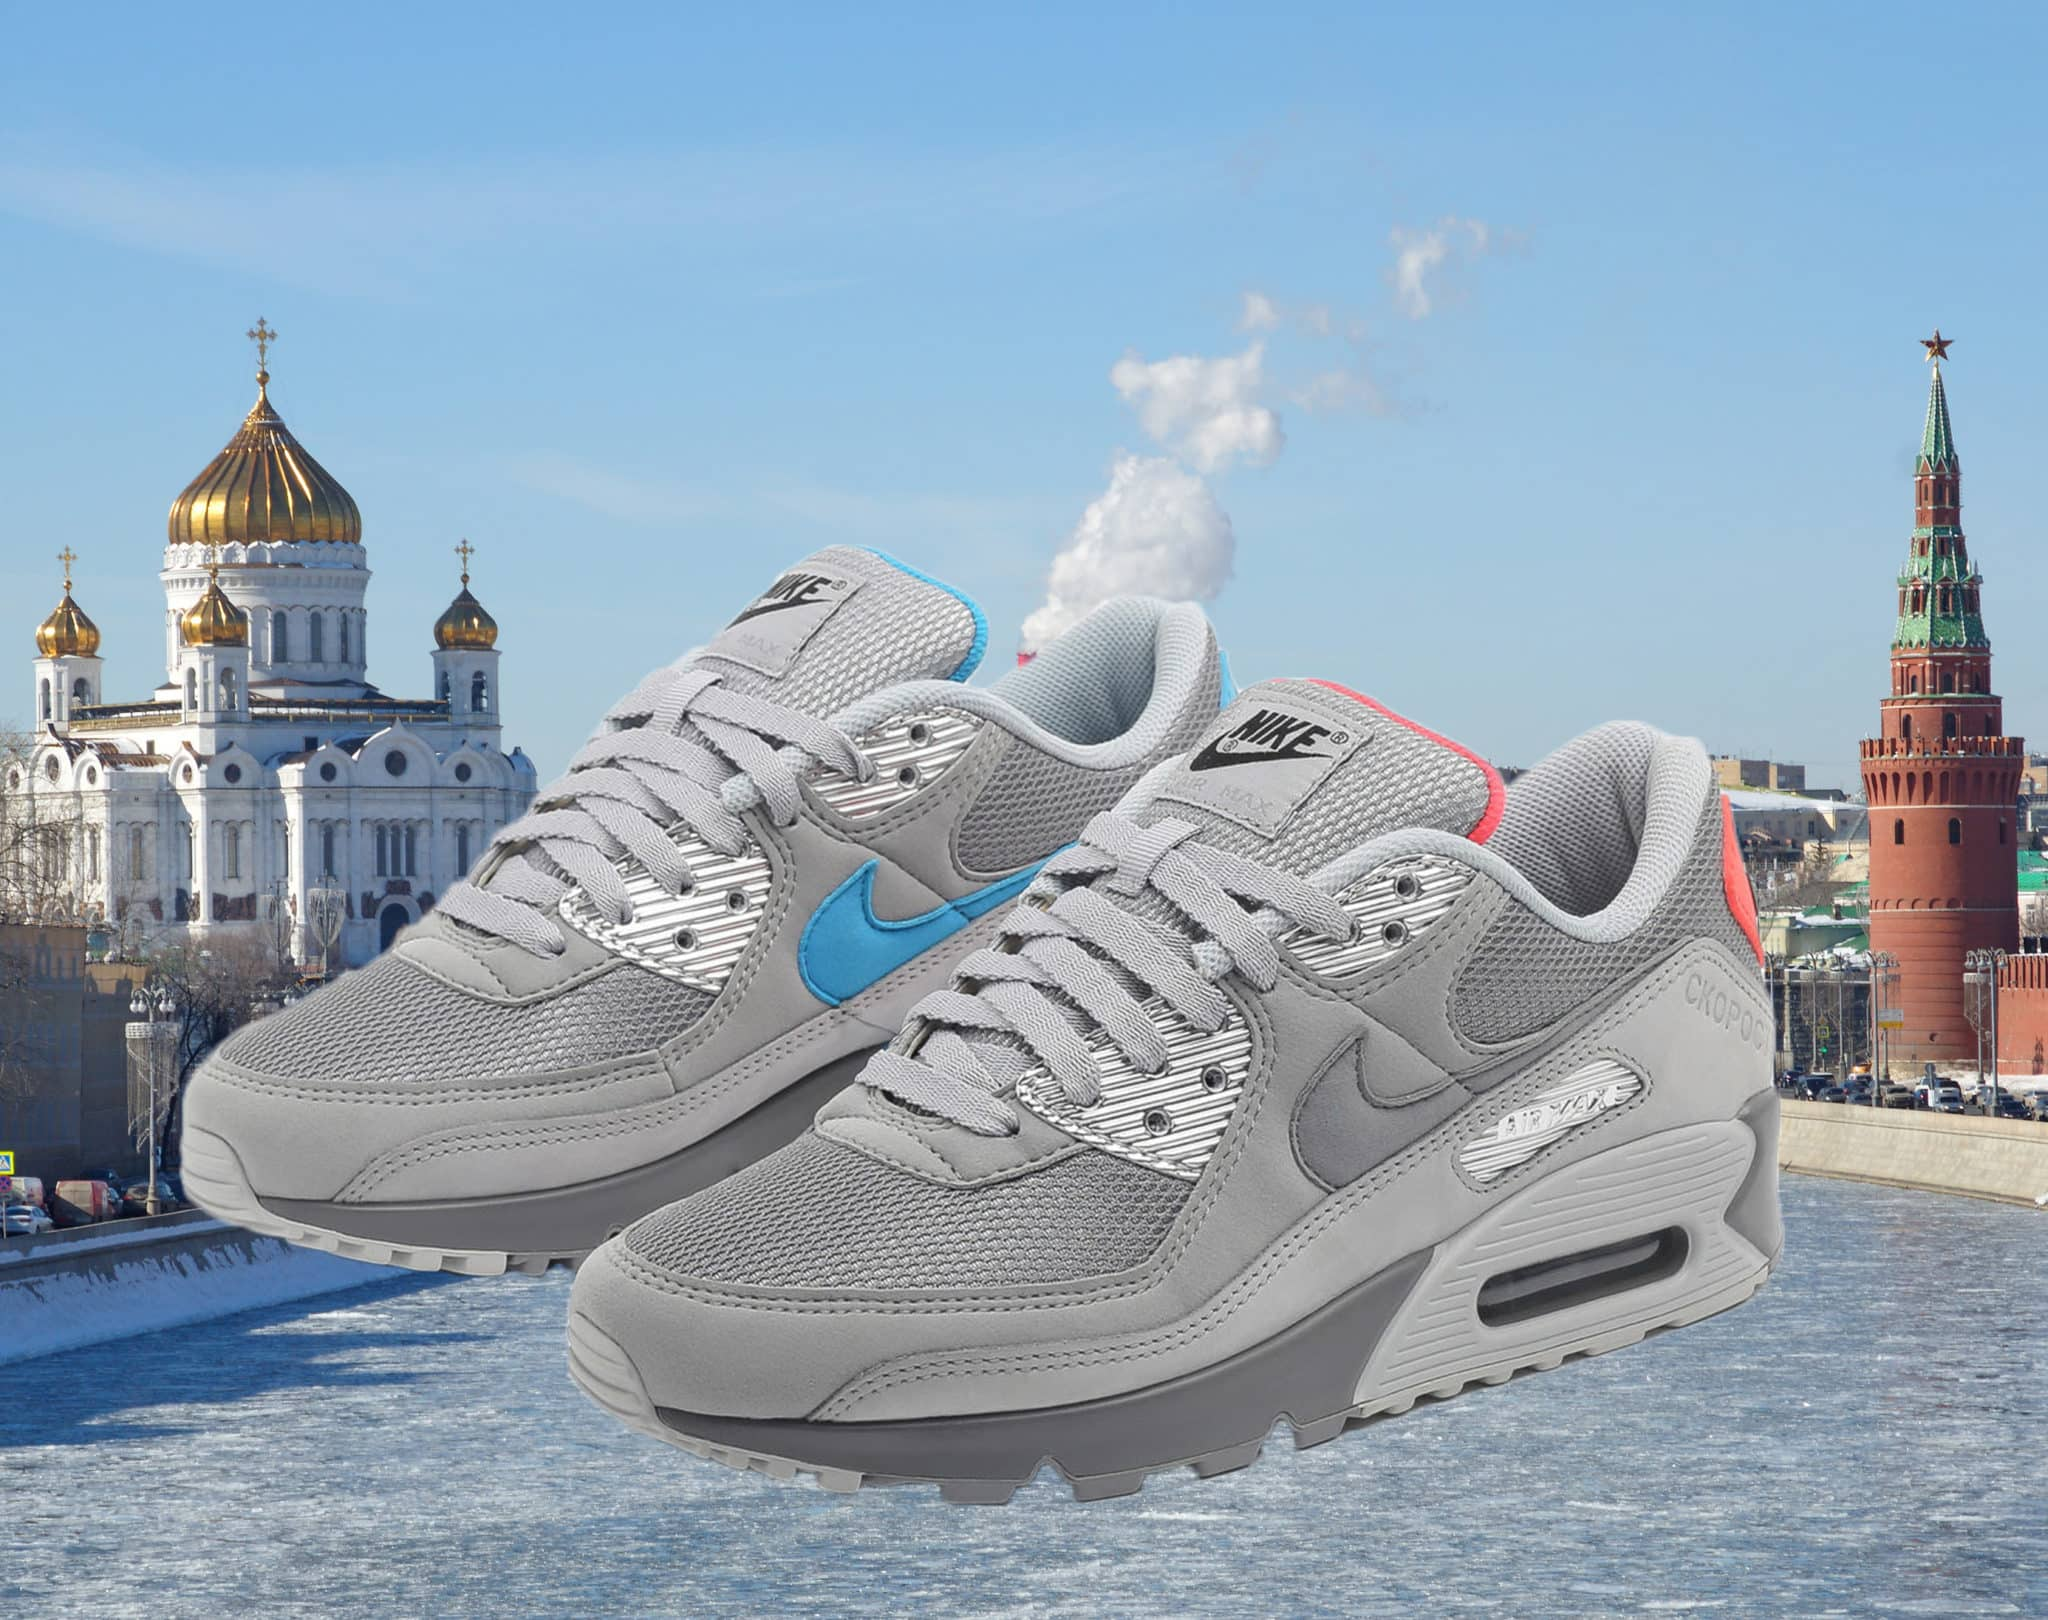 The New, Cyrillic-Dressed Air Max 90